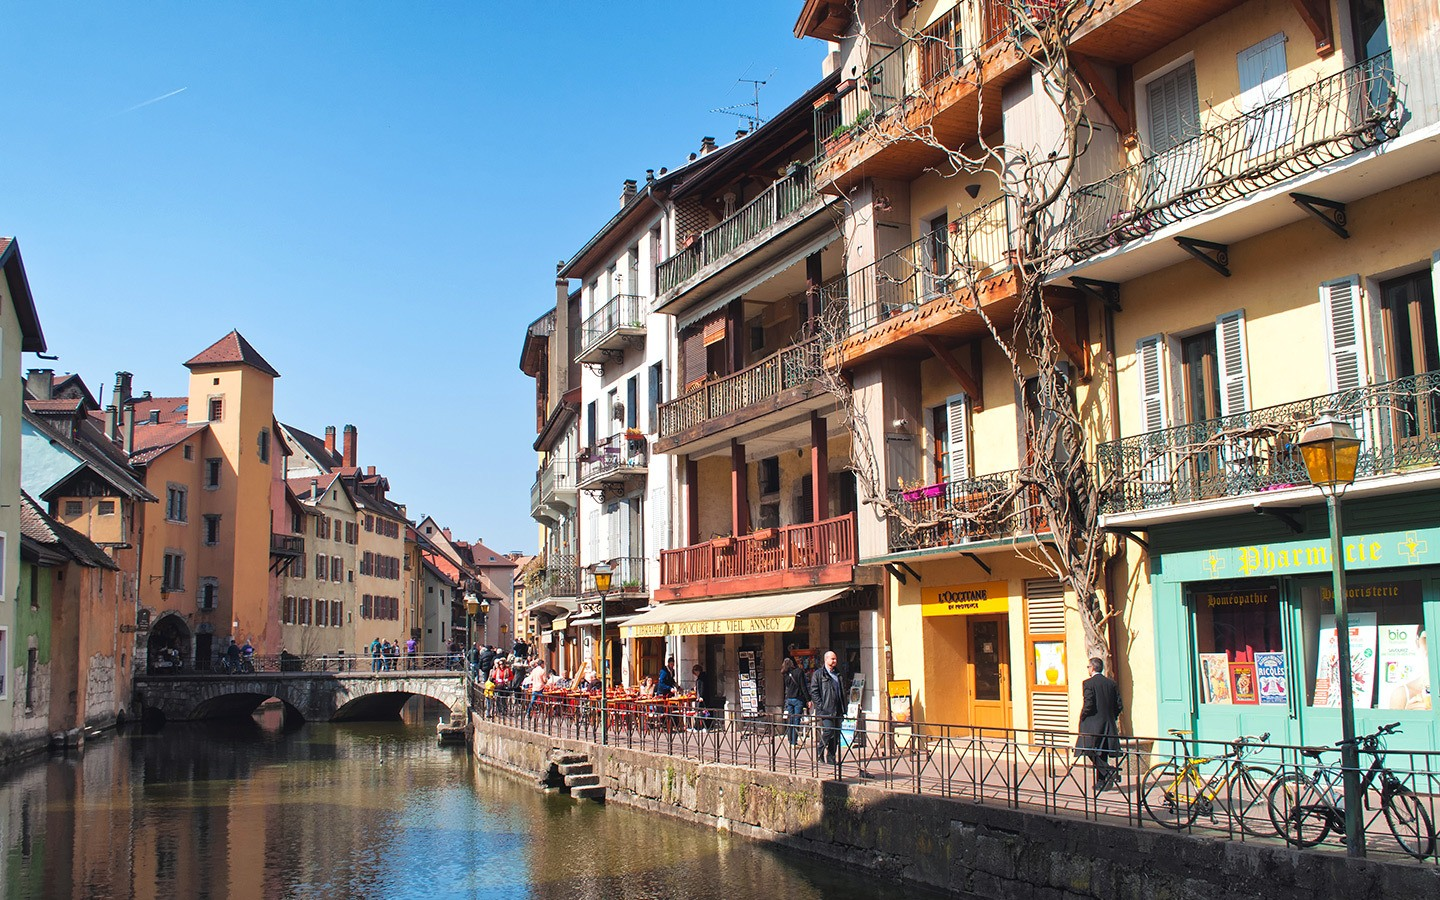 Canals in Annecy – things to do in Annecy, France